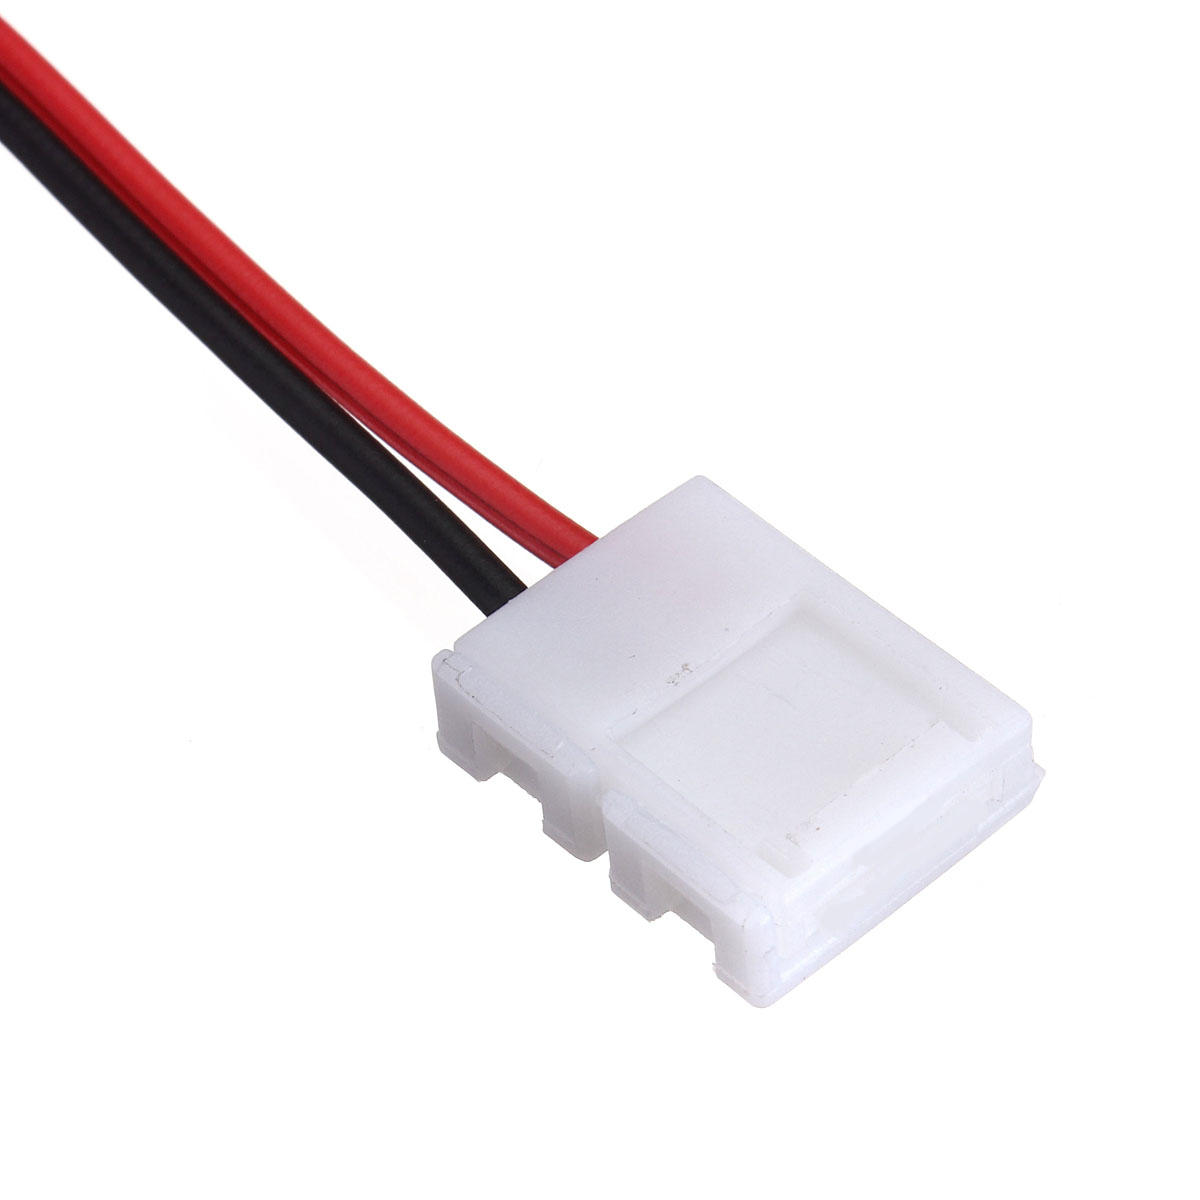 hight resolution of 20x 2 pins connector for led strip wire 3528 5050 with pcb ribbon cod